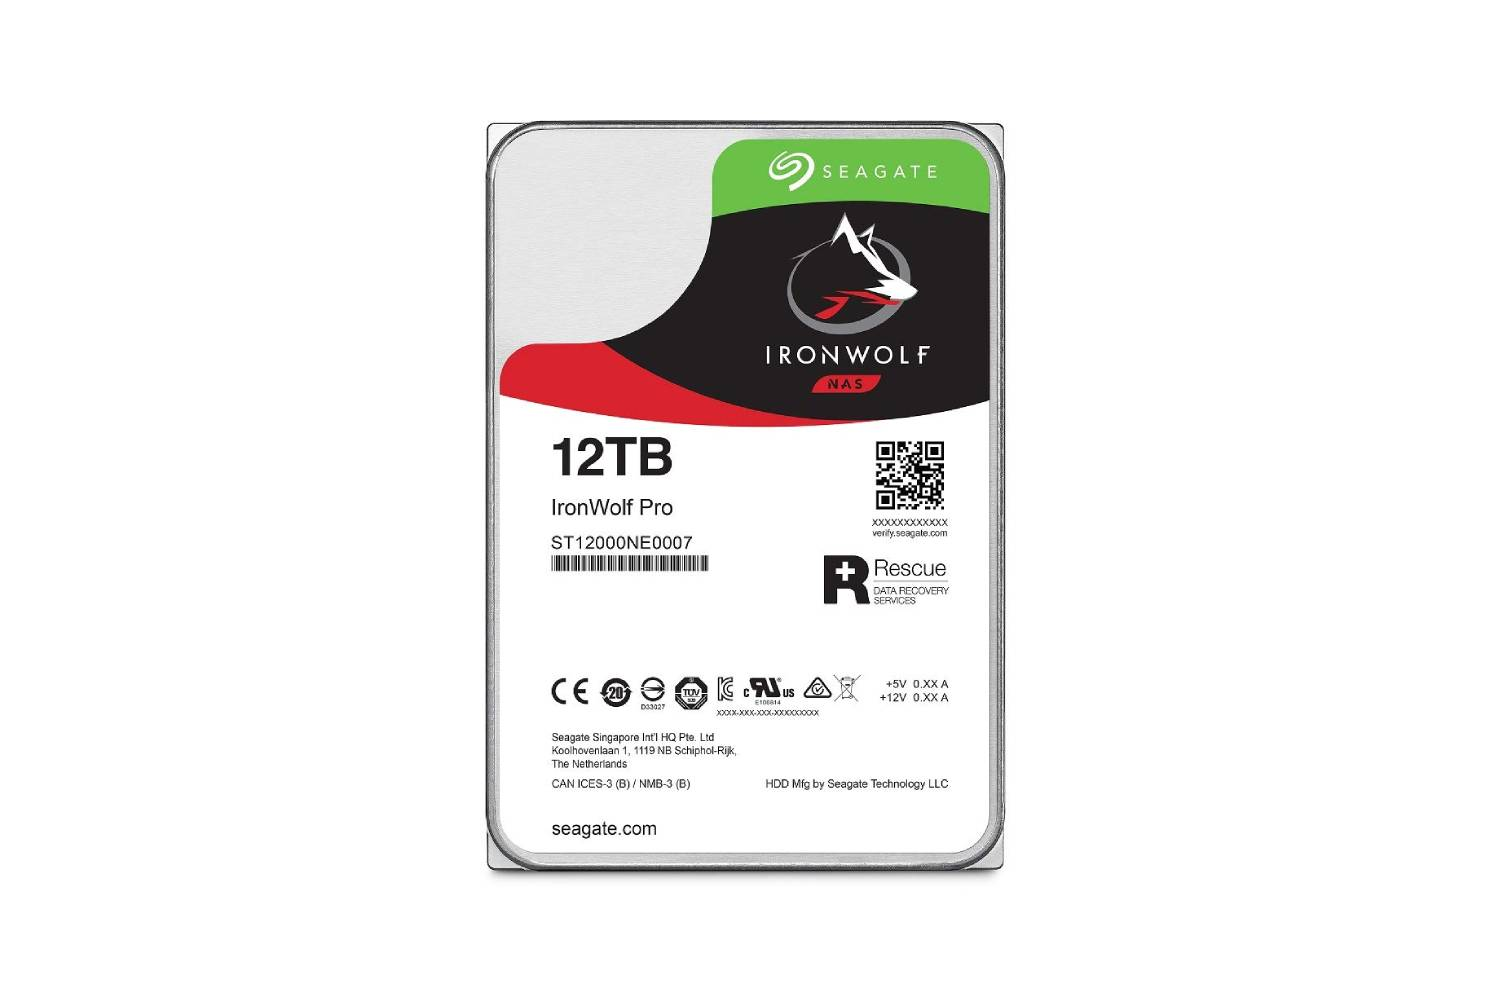 Seagate 12TB IronWolf Pro 7200RPM SATA 6Gb/s 256MB Cache 3.5-Inch NAS HDD-computerspace